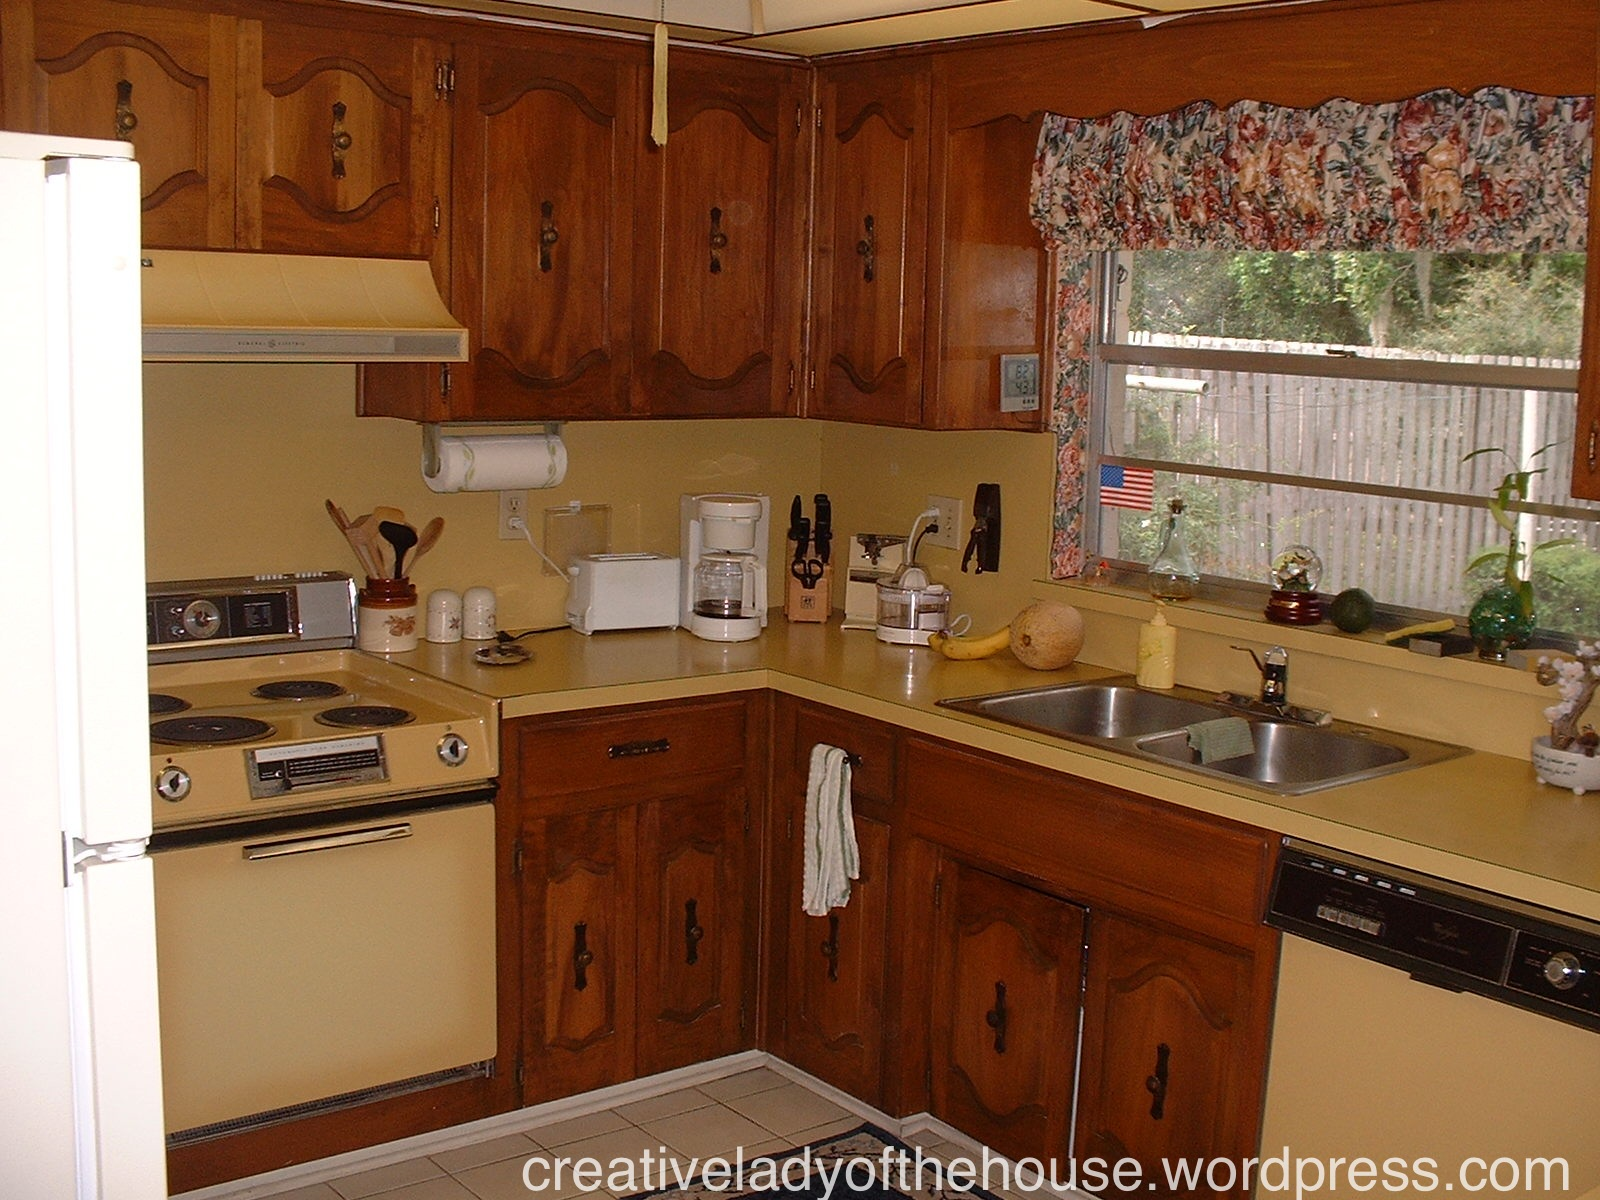 Small old kitchen home design ideas in small old kitchen for Kitchen cabinets makeover